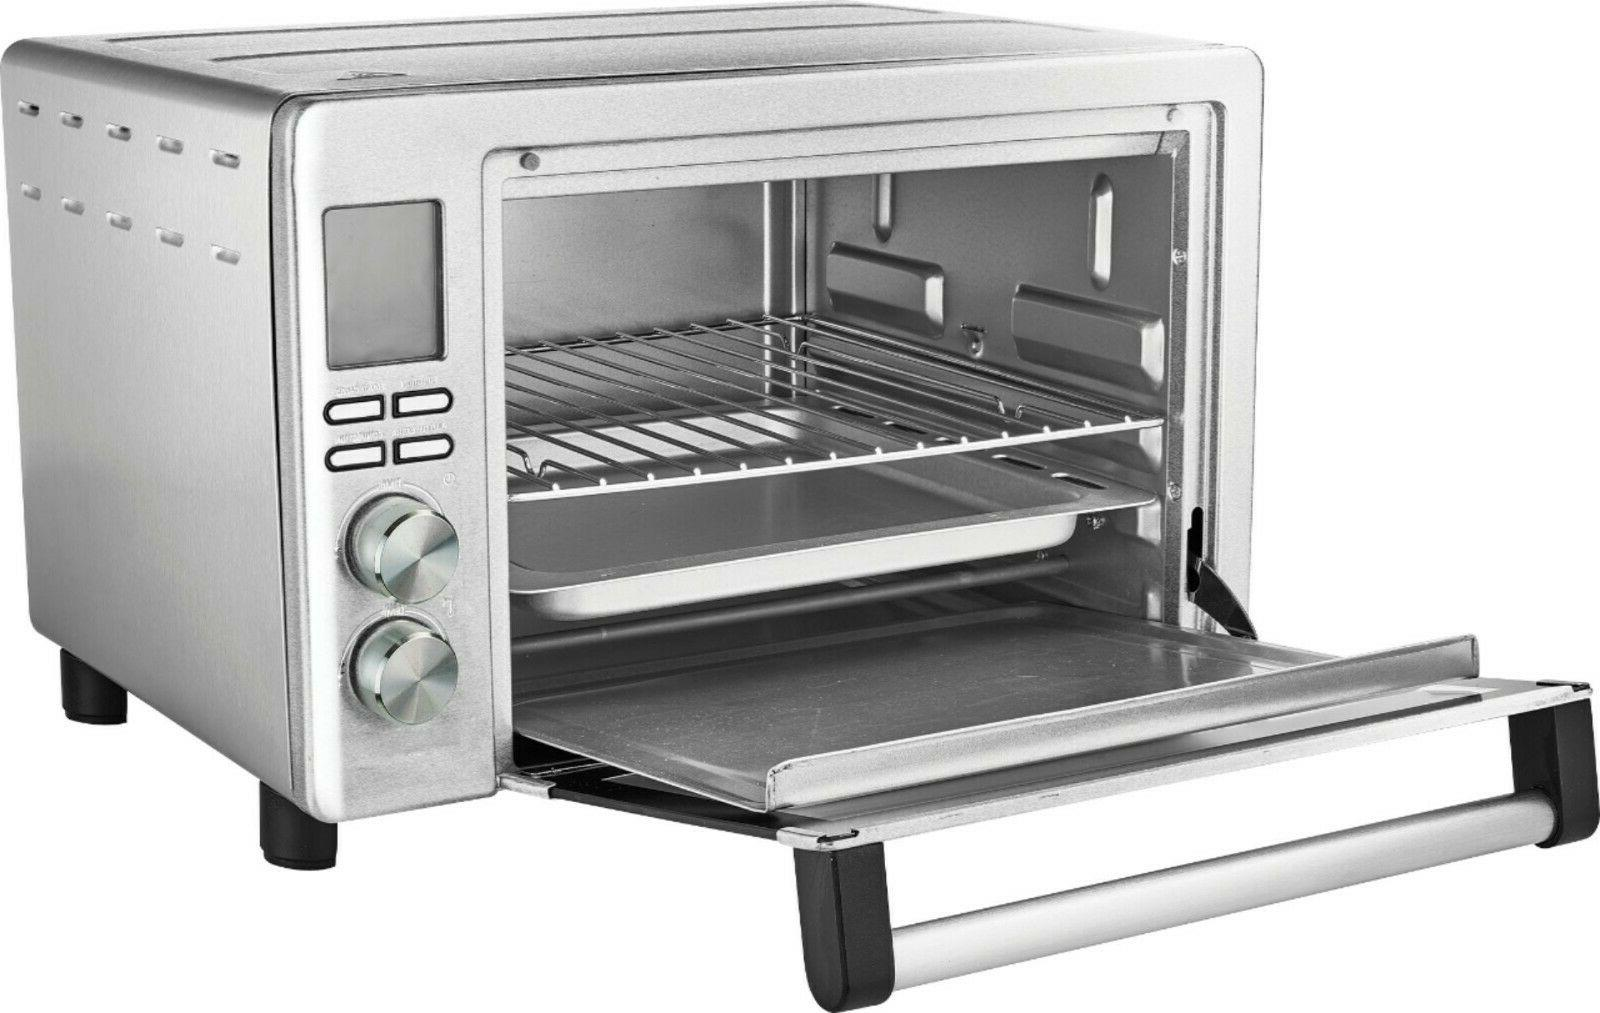 6 ft Oven Stainless Steel Settings Pro Series 01